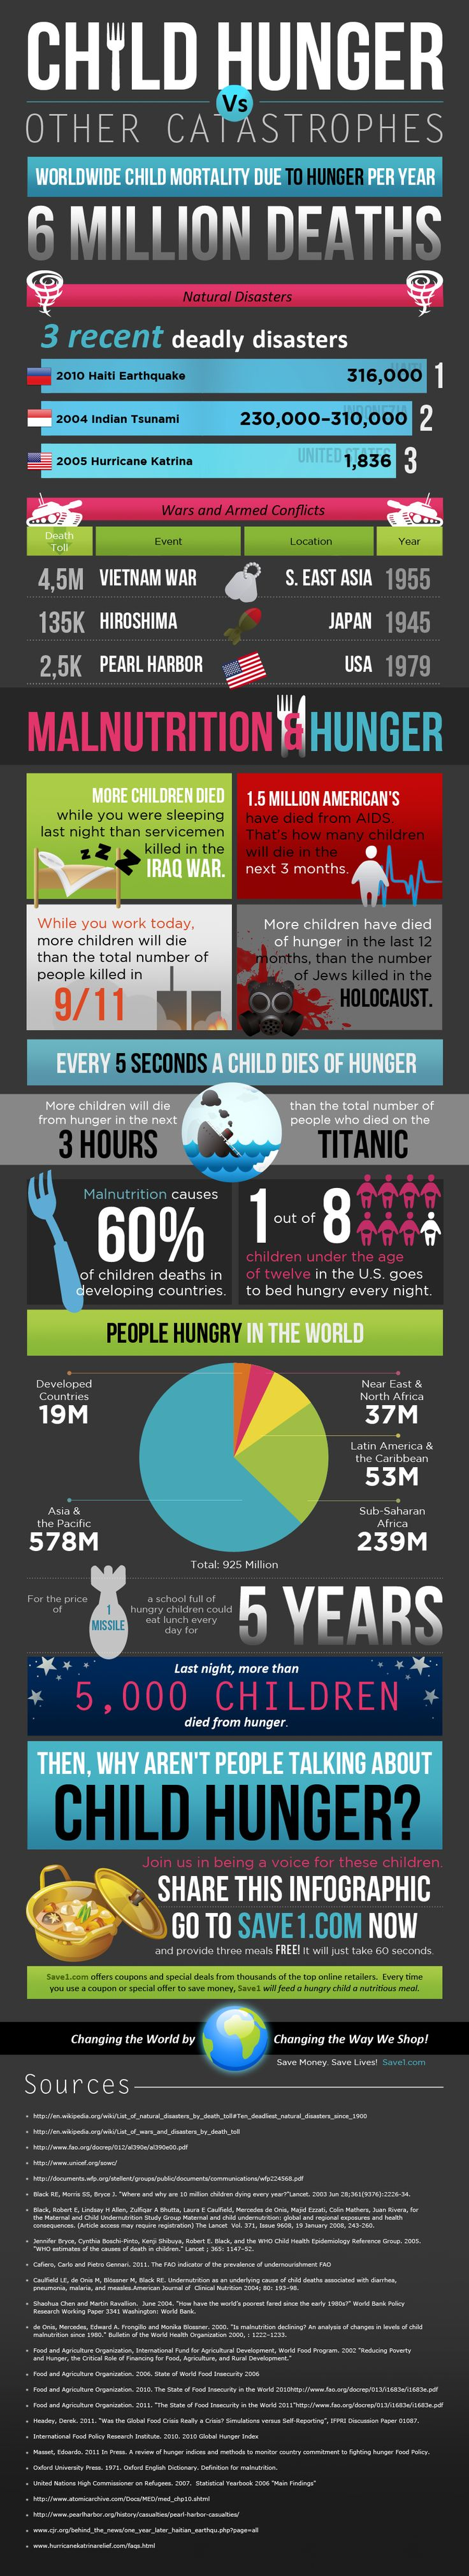 an introduction to the issue of world hunger World hunger outline the top 20% of the world's population comsumes 86% of the world's goods (united nations development programme (undp), new york 1998) andre, claire, & velasquez, manuel (1992) world hunger: a moral response issues in ethics, 5(1) example.